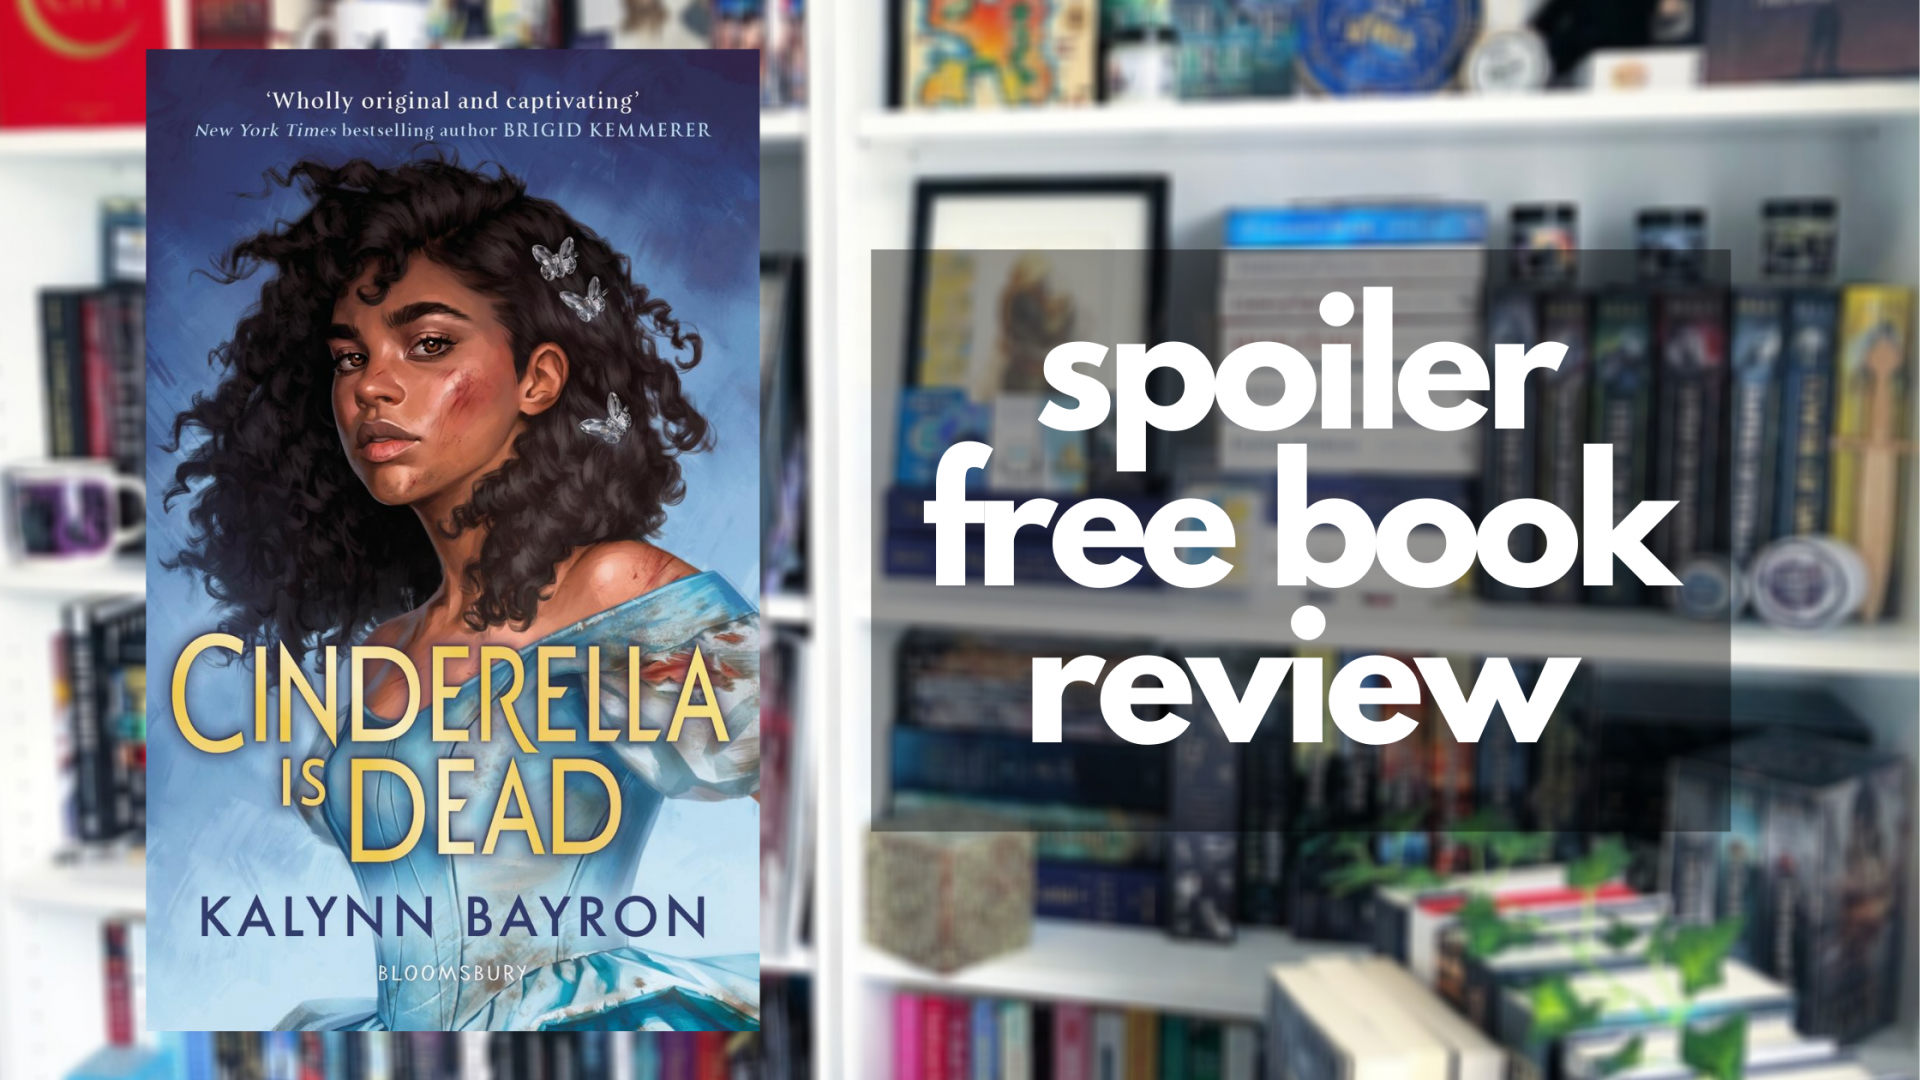 Review of Cinderella is Dead by Kalynn Bayron